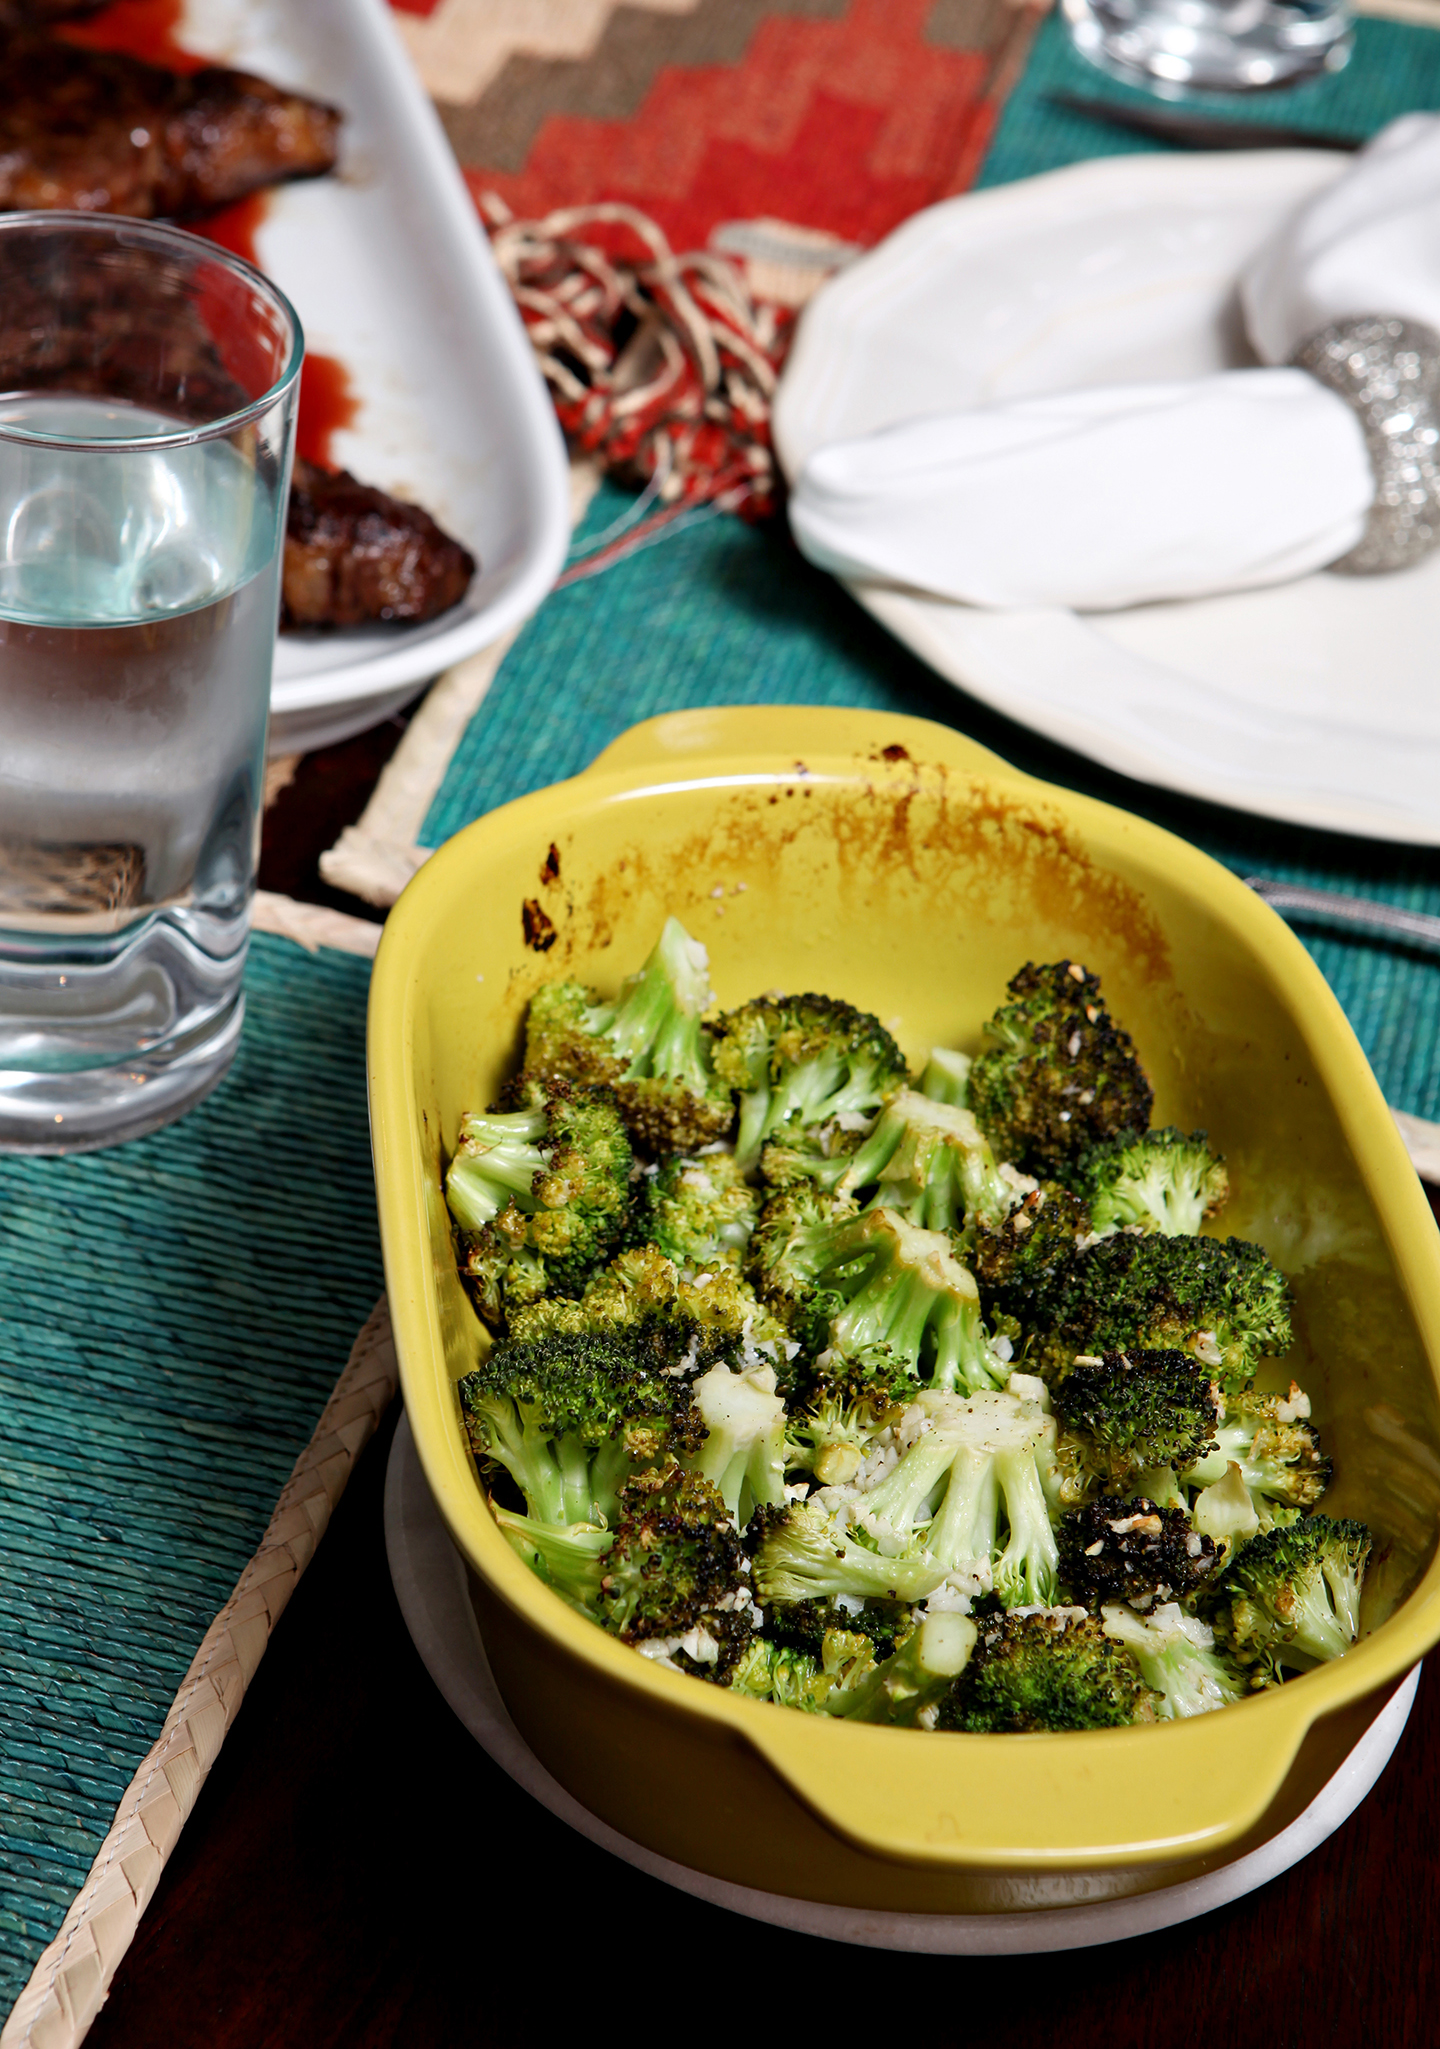 Lemon Garlic Roasted Broccoli   Looking for a simple and delicious side that comes together in less than 30 minutes? Try out this wonderful Lemon Garlic Roasted Broccoli, which is light, tasty and super easy to make! // @speckledpalate for @mycookingspot